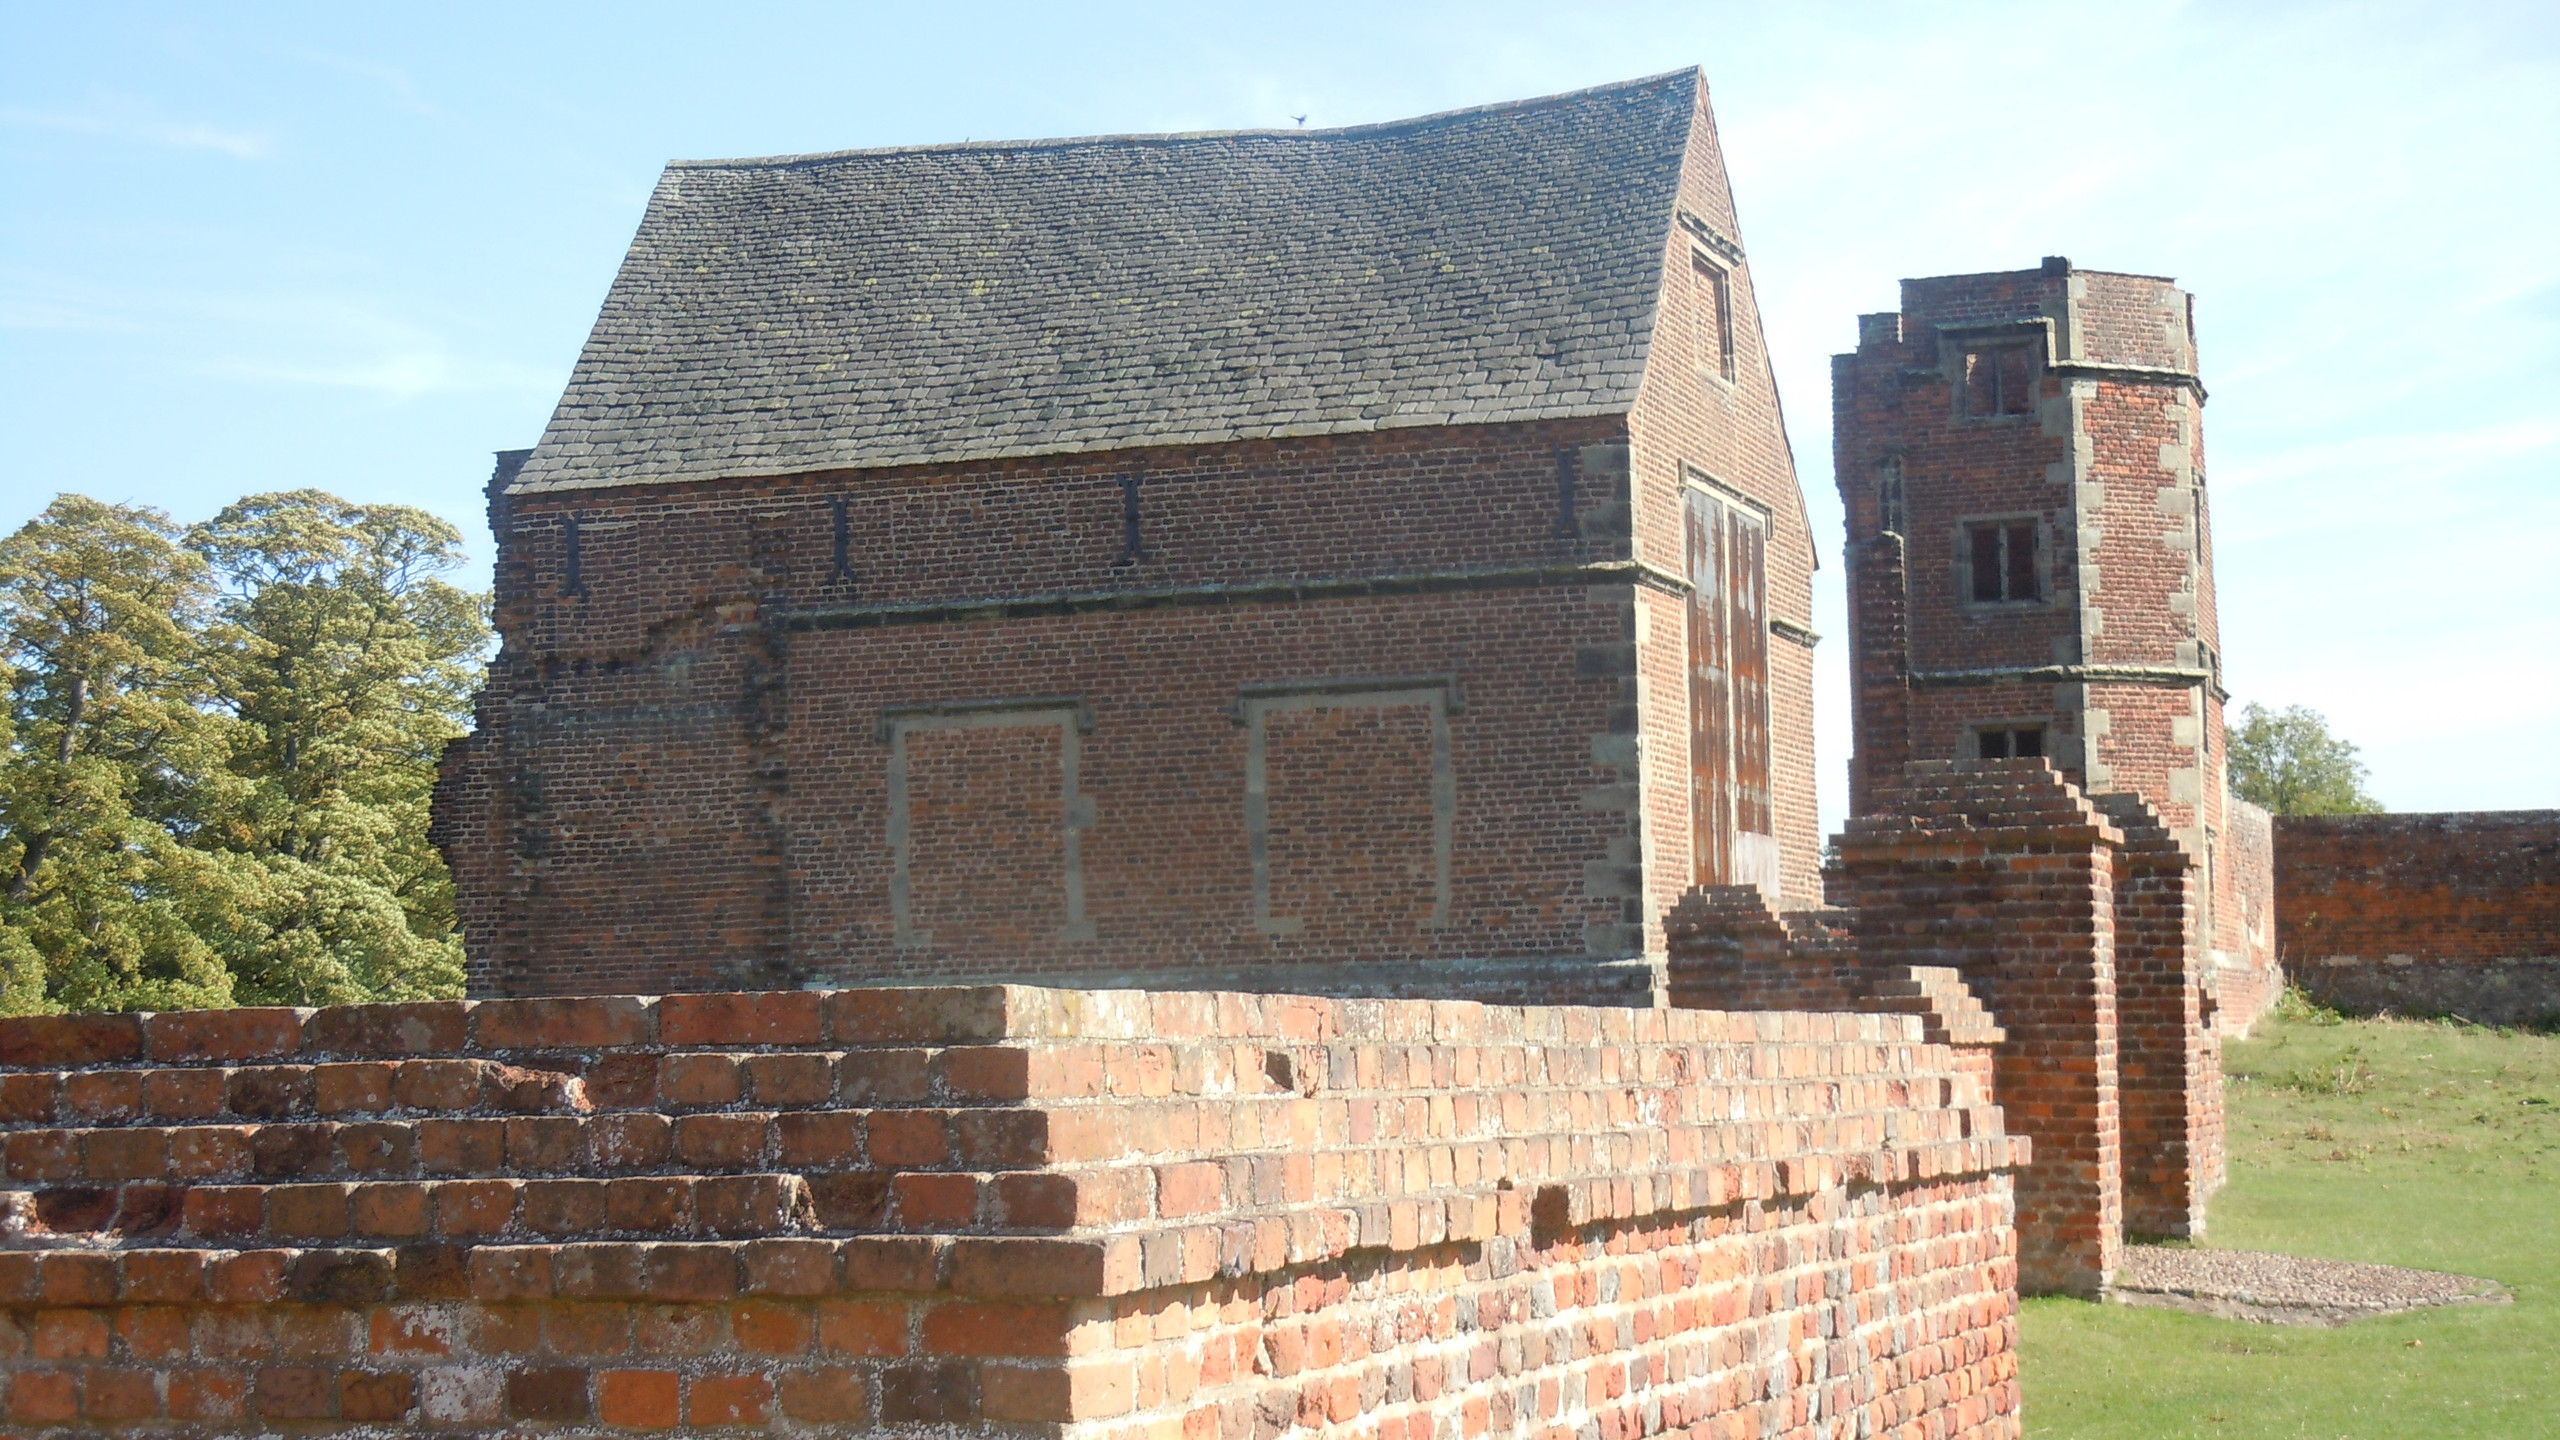 The remains of Bradgate House, home of the Grey family, Lady Jane Grey, Queen of England for nine days was born here. in the year 1537